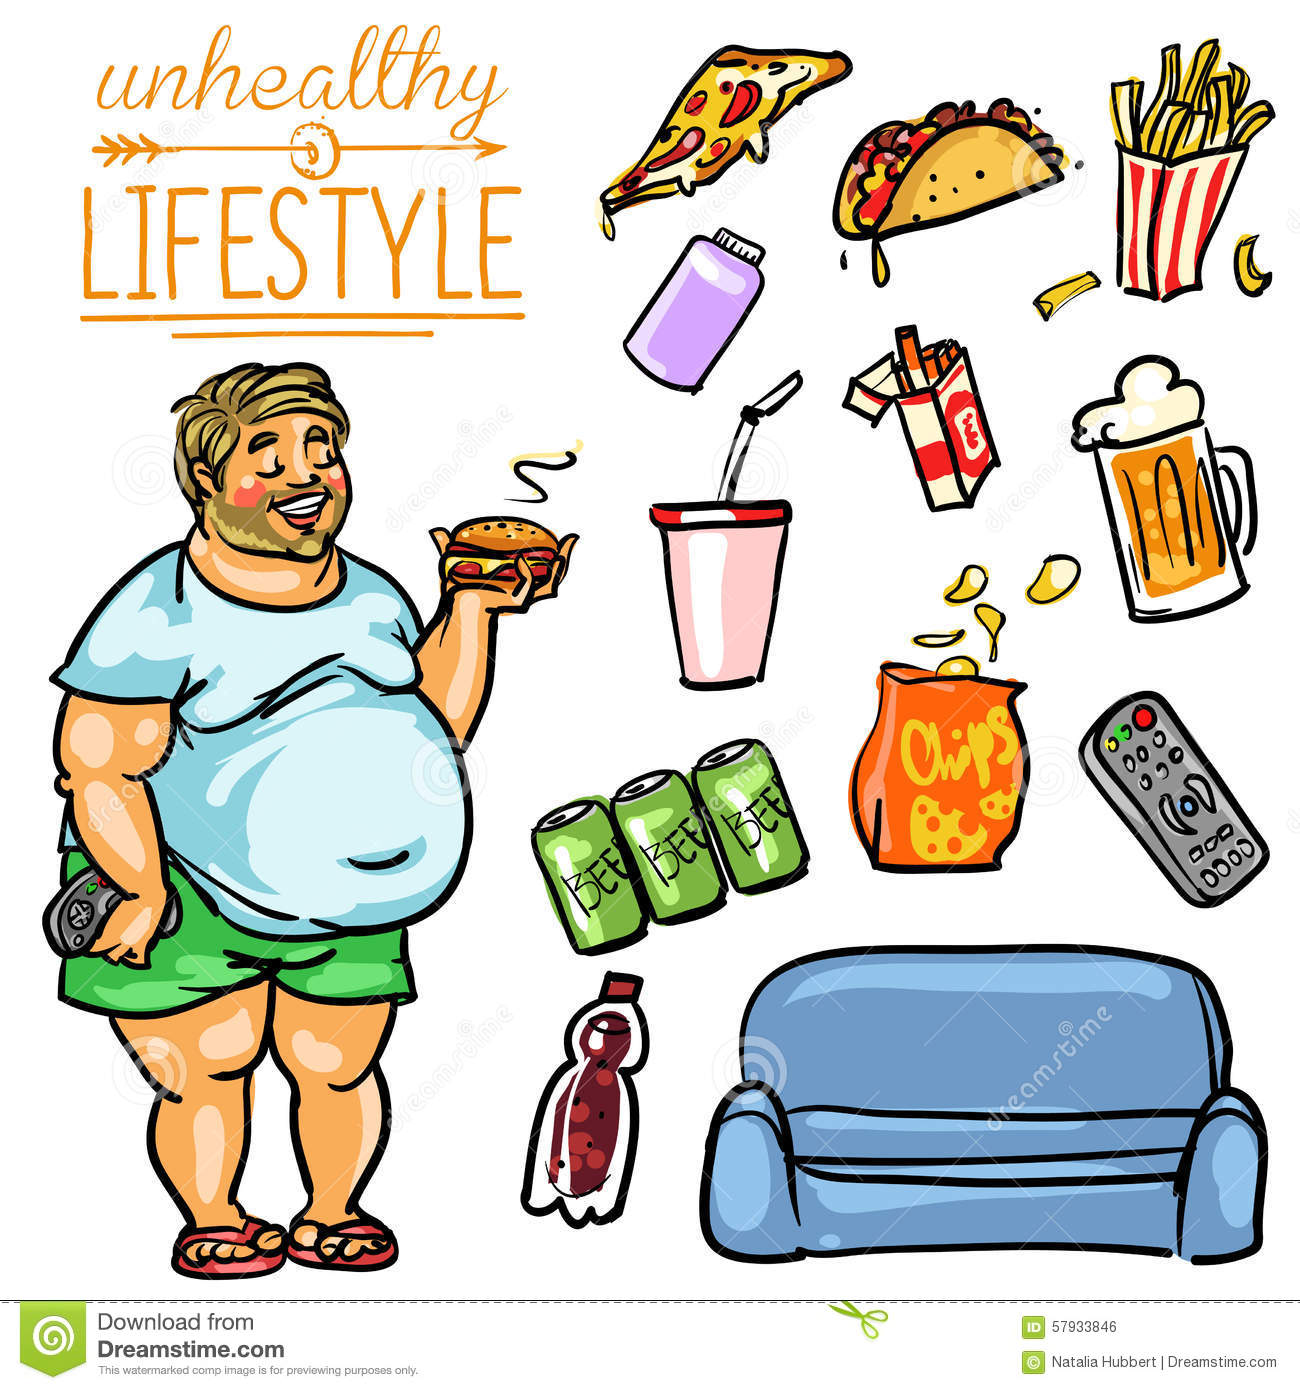 unhealthy lifestyle man stock vector illustration of